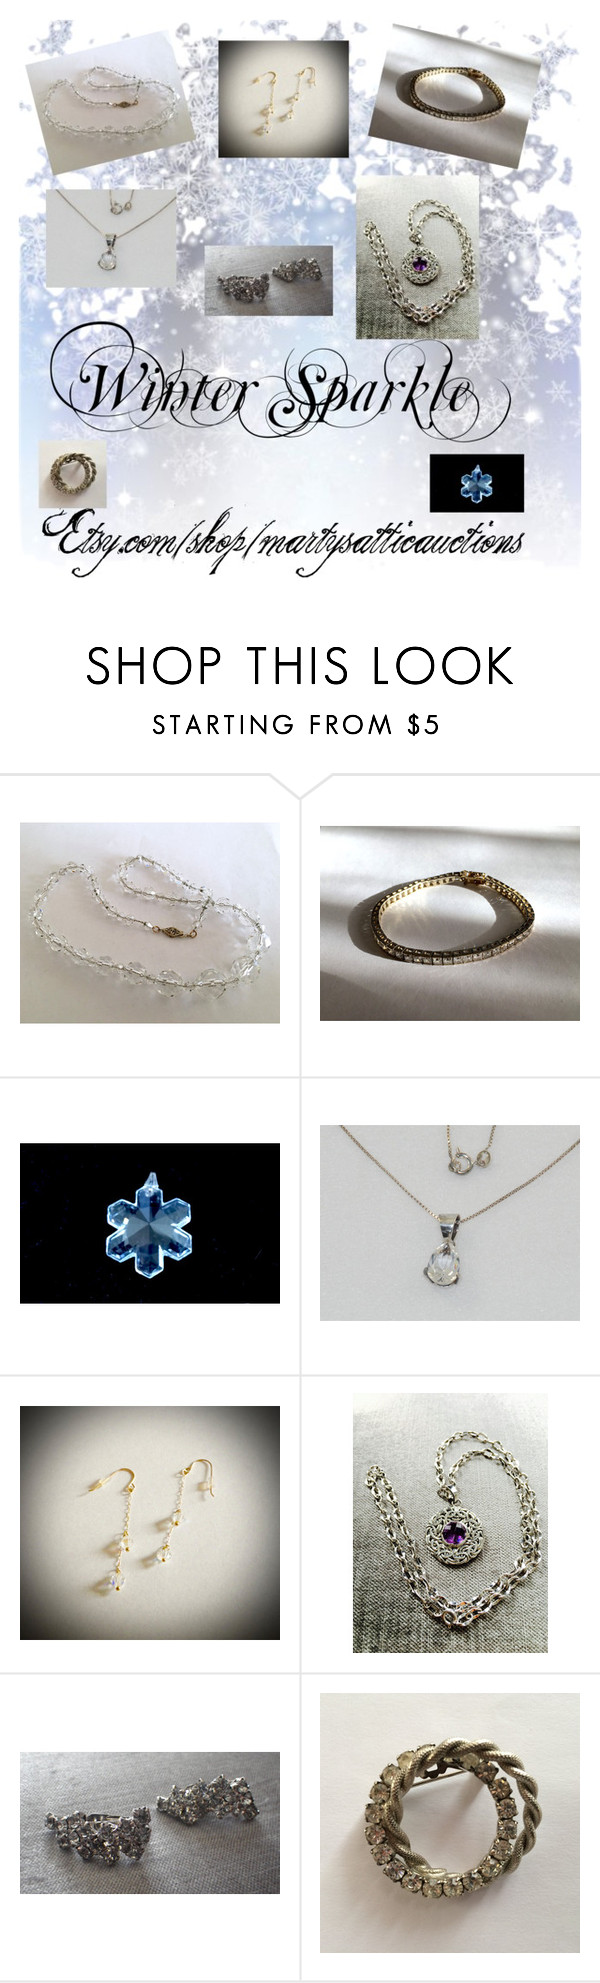 """Time for some Winter Sparkle!!"" by martysattic ❤ liked on Polyvore featuring martysatticauctions"